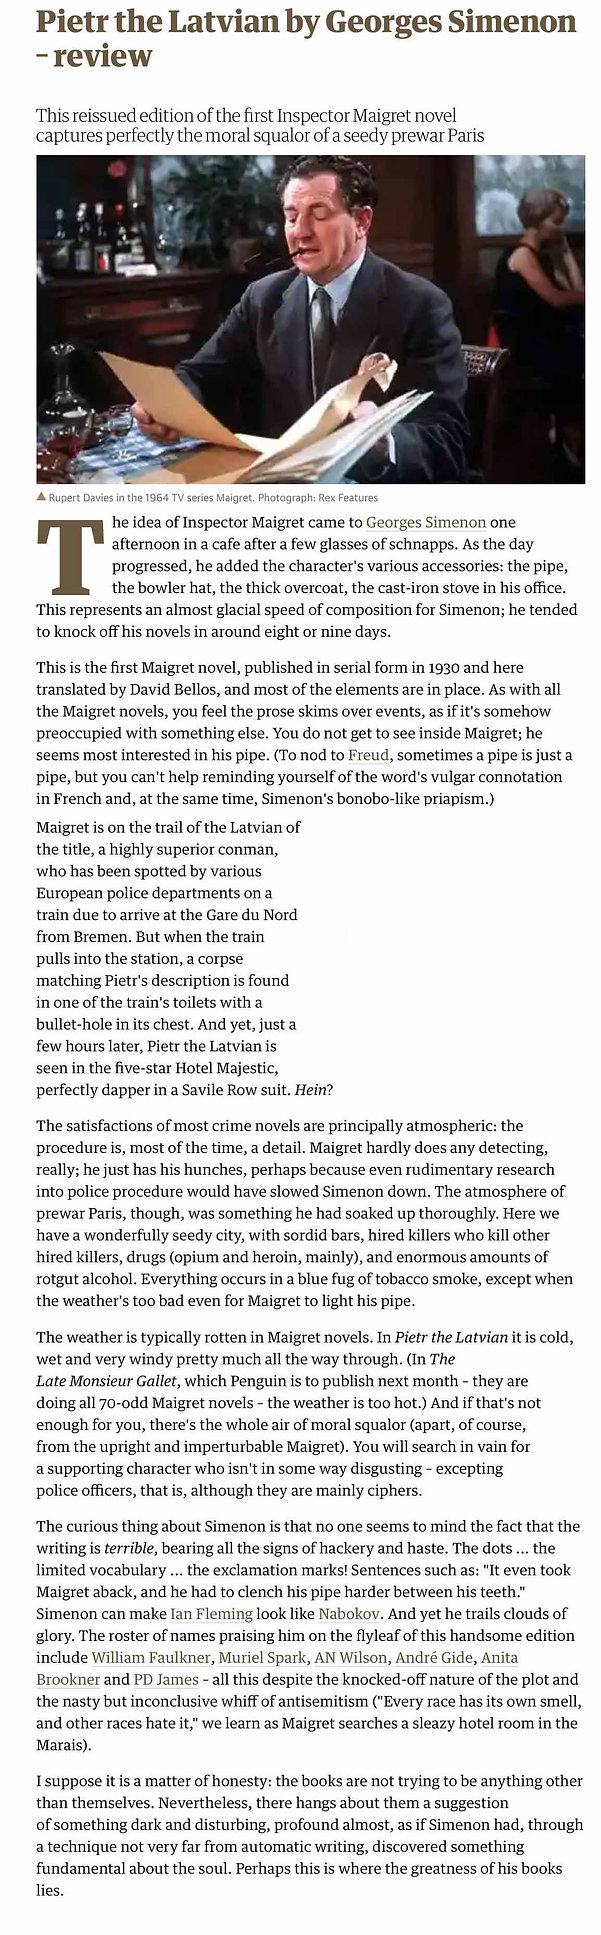 Pietr the Latvian Review The Guardian 26 November 2013